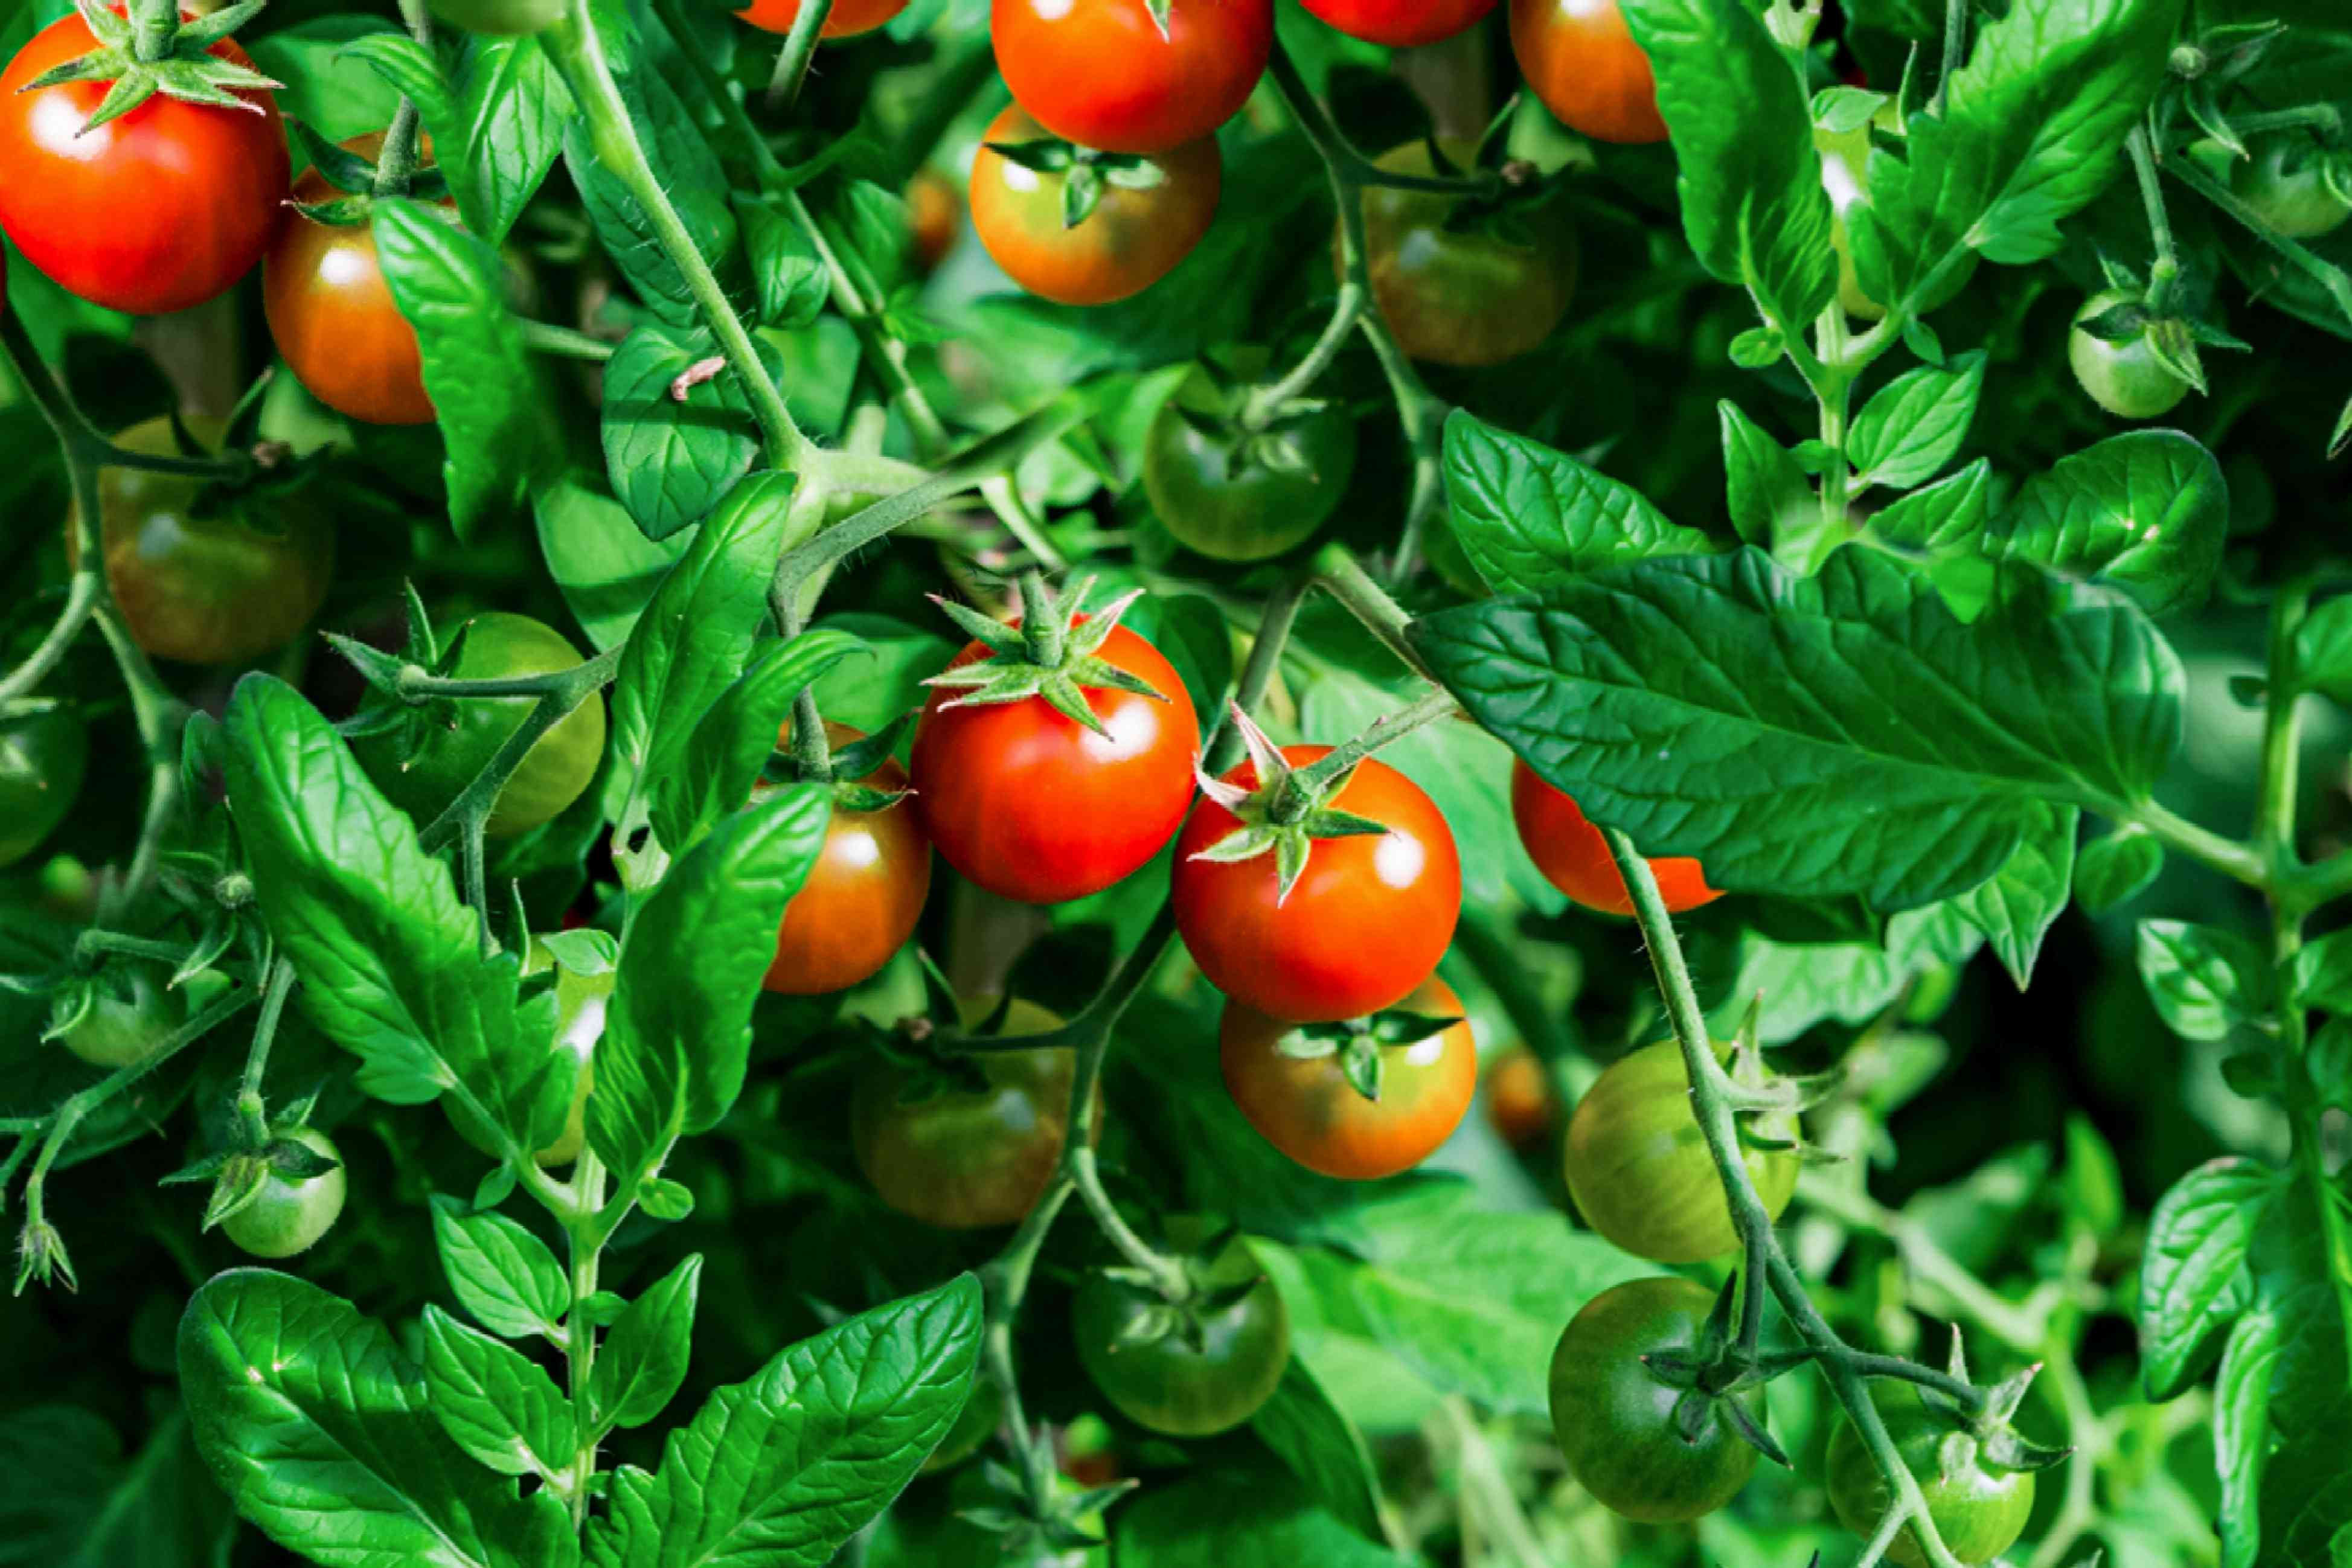 Matina tomato plants with bright red tomatoes hanging in vines and leaves